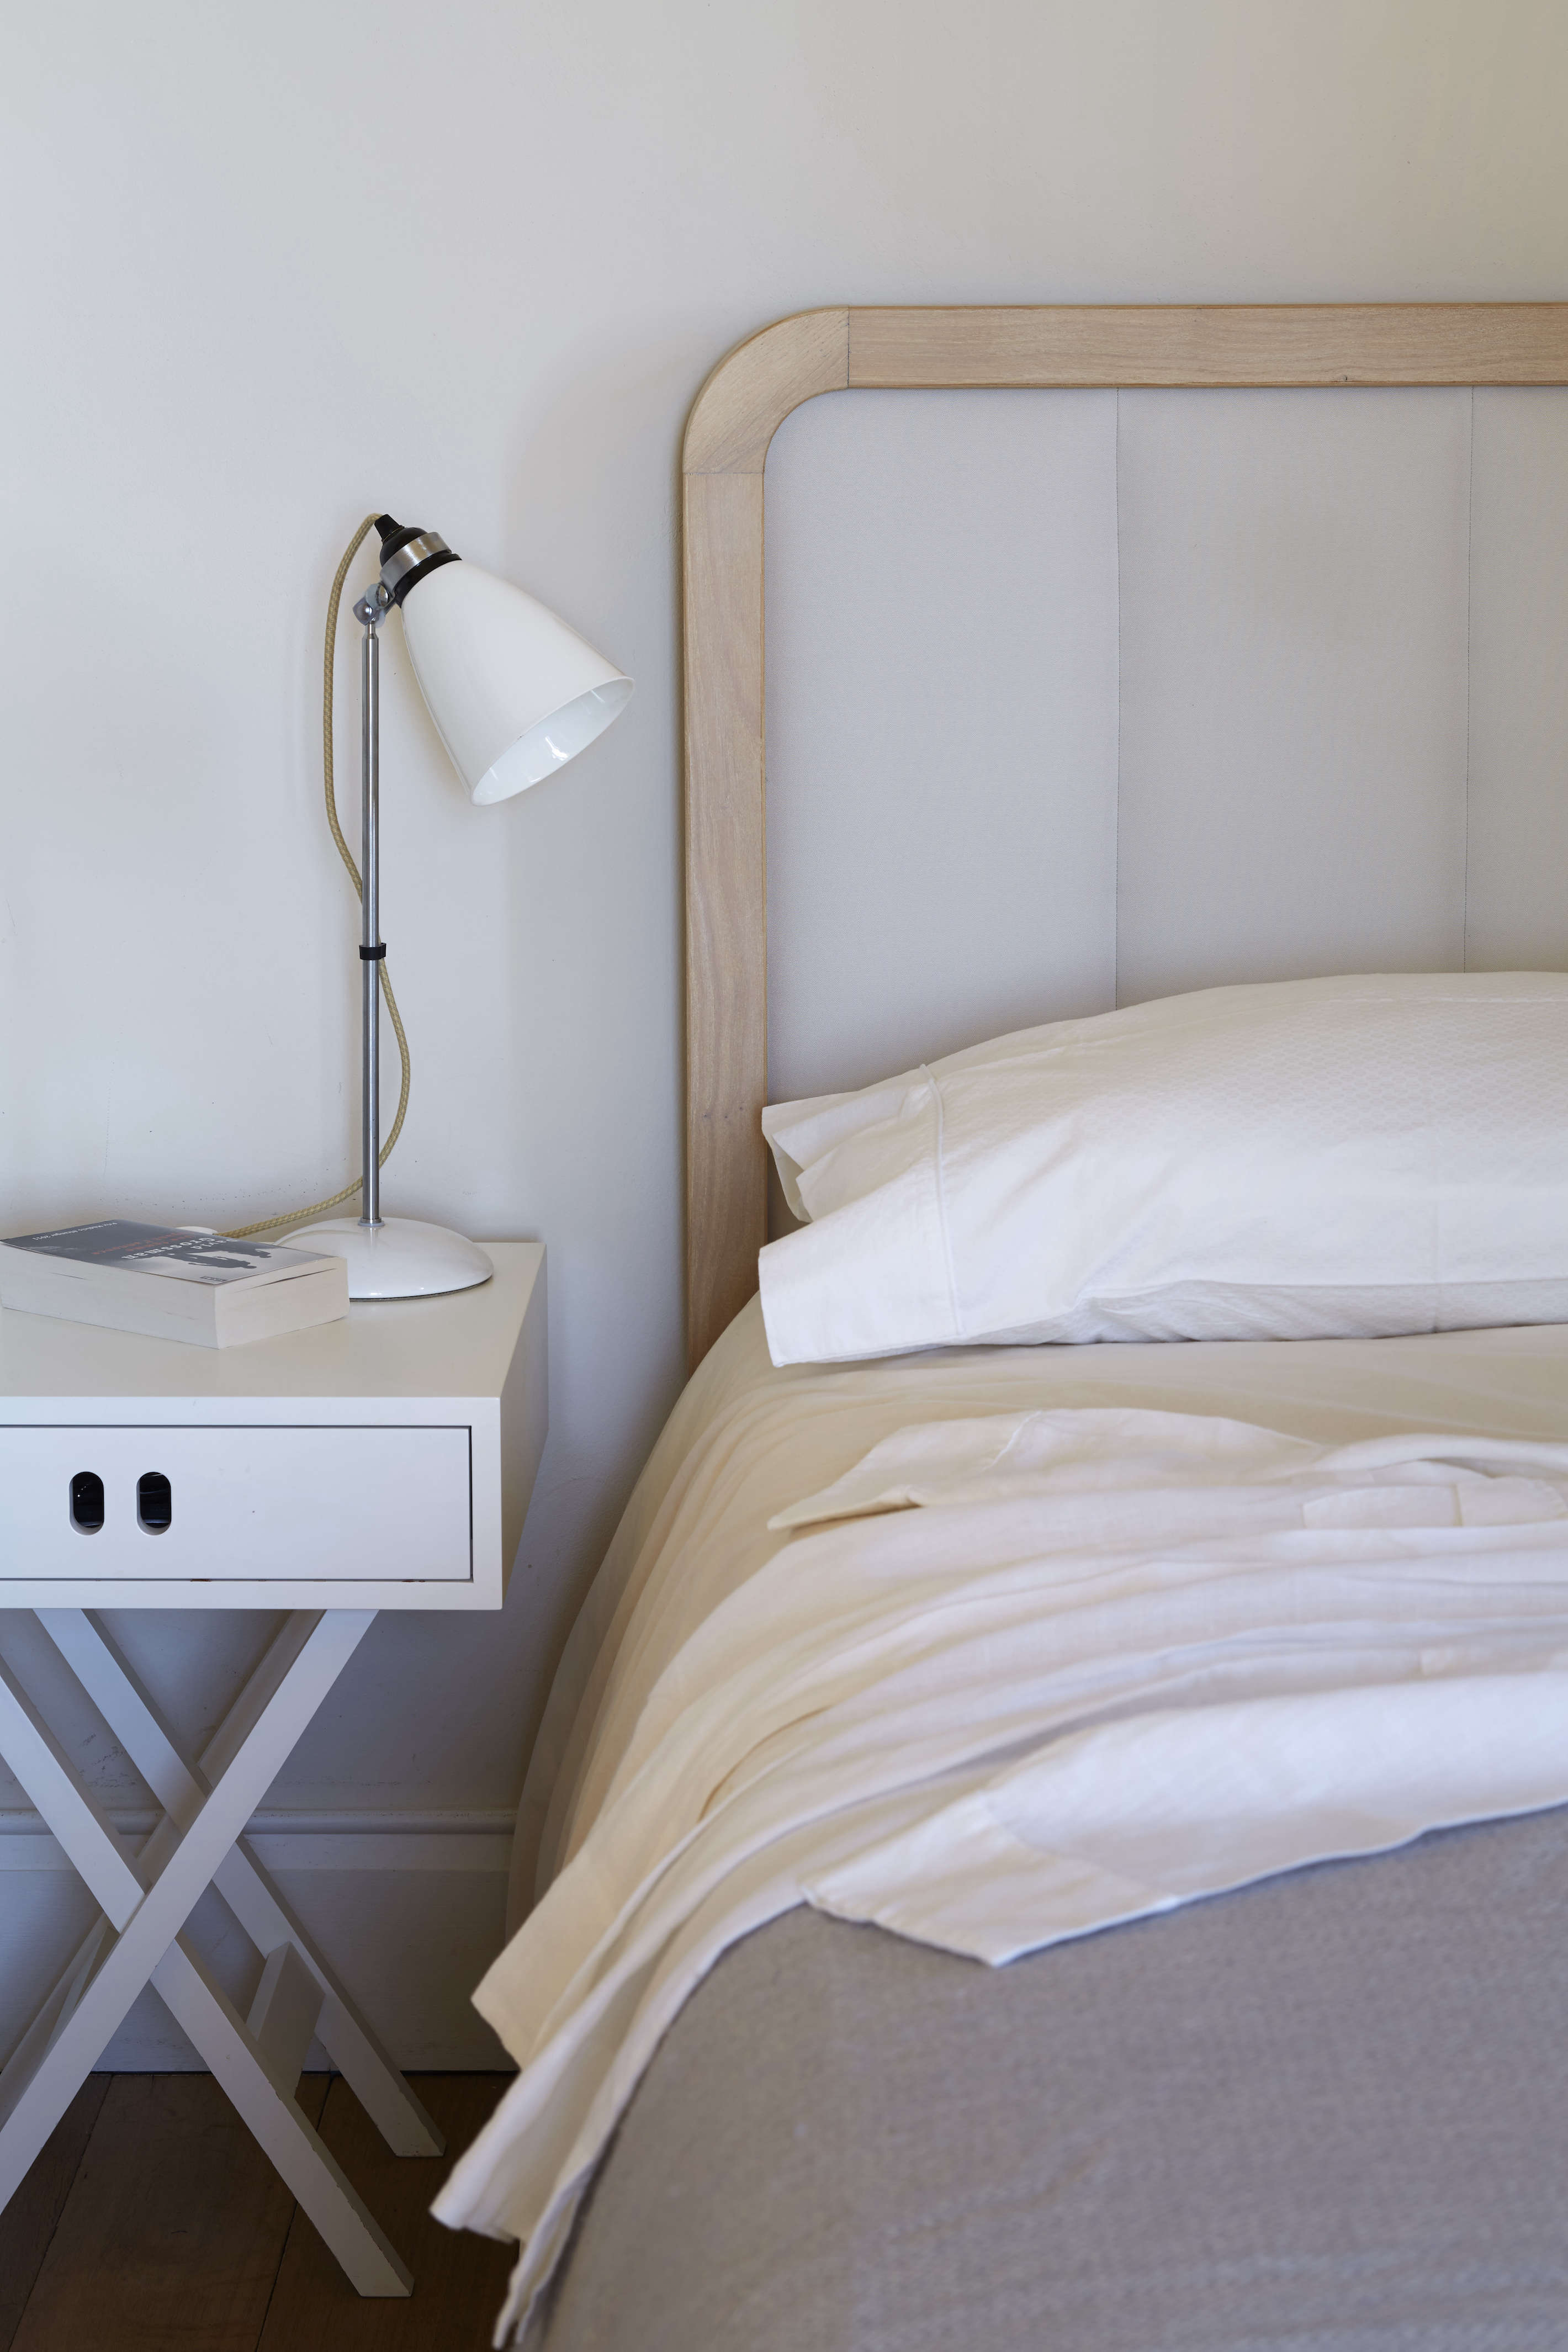 On the bedside tables, we were happy to spot a Remodelista favorite, the BTC Hector Medium Dome Table Lamp with a bone-china shade. (See the Remodelista book, page 7, and High/Low: The Classic English Table Lamp from Original BTC.)